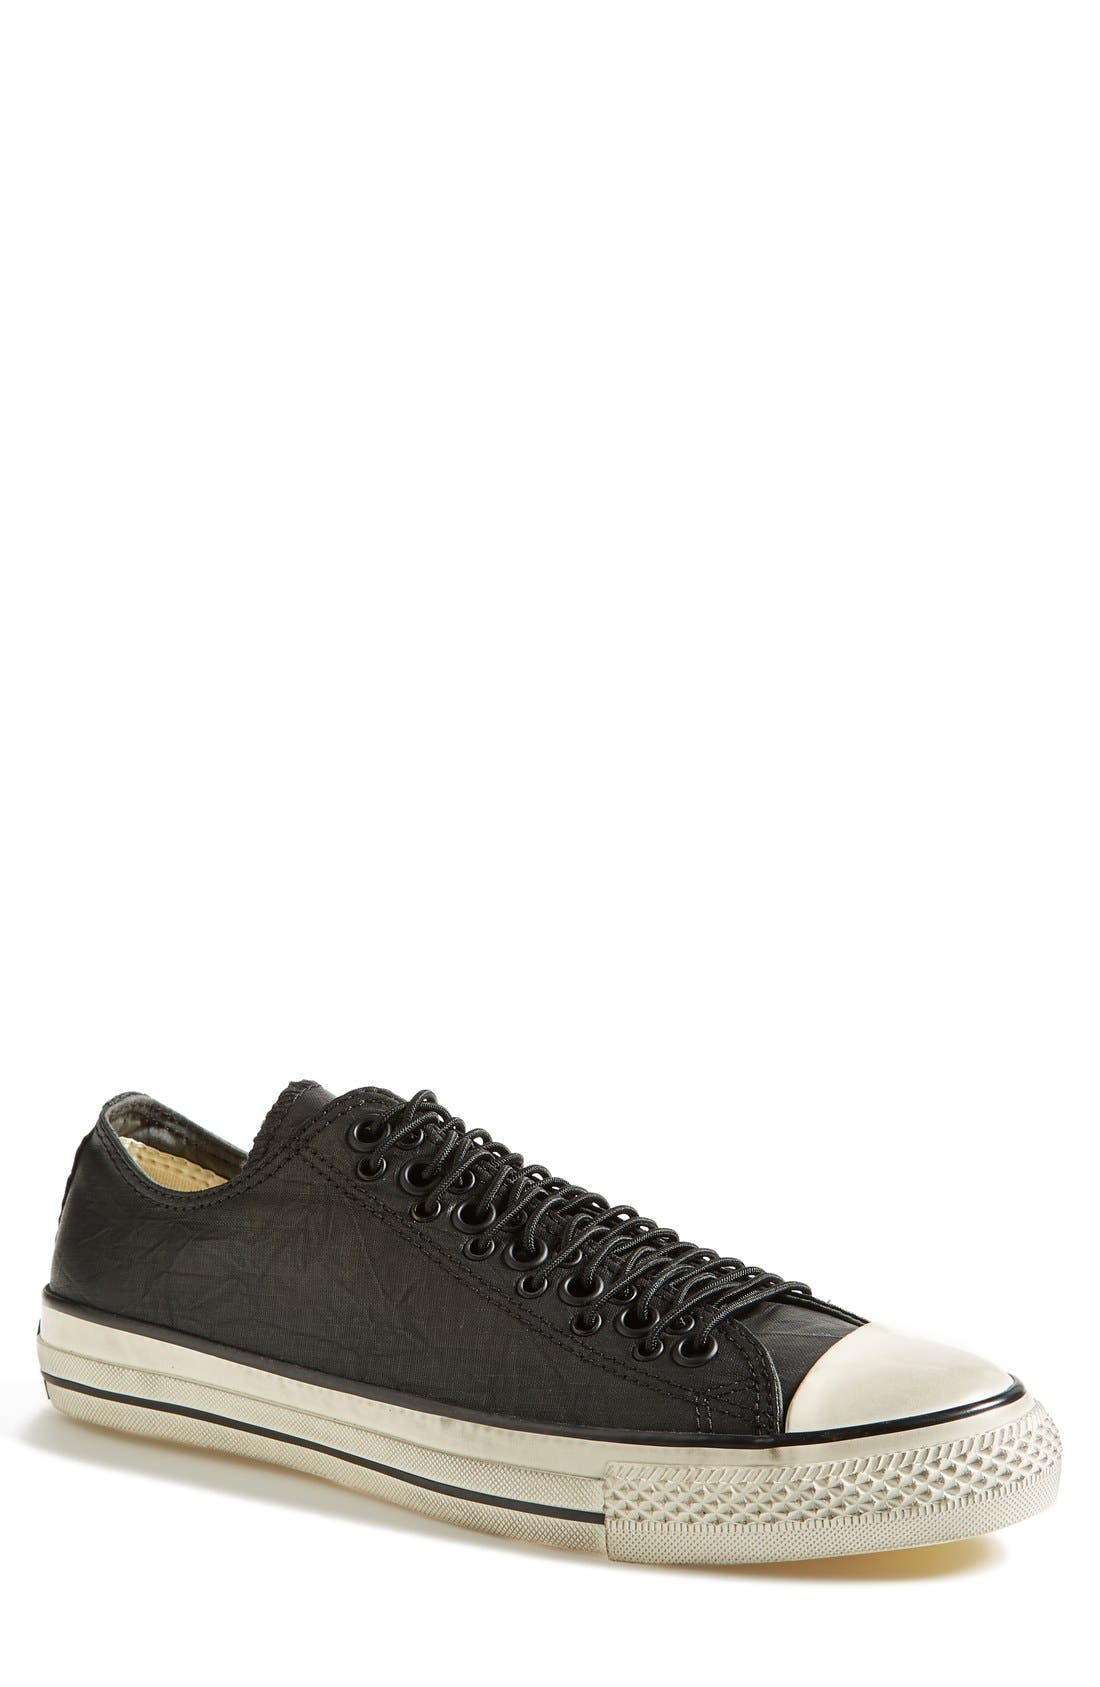 Alternate Image 1 Selected - Converse by John Varvatos Chuck Taylor® All Star® Low Sneaker (Men) (Online Only)